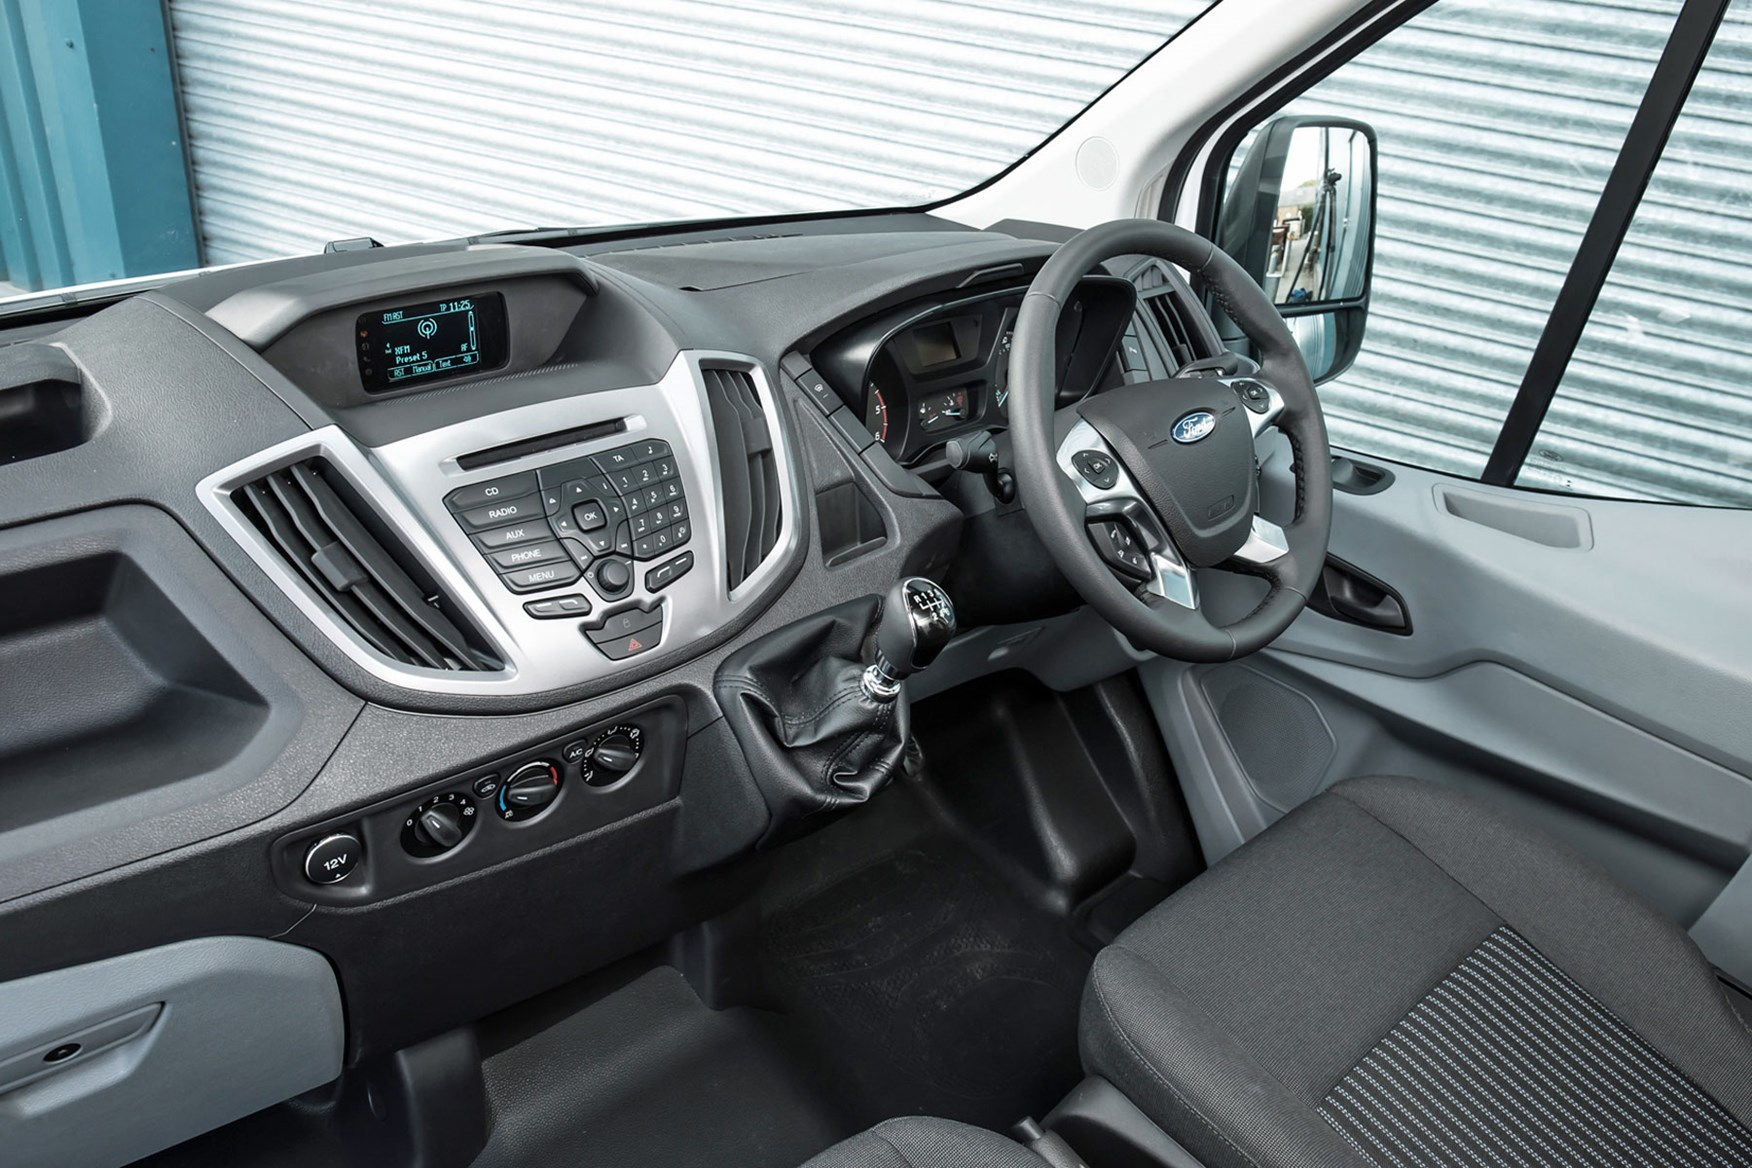 Ford Transit (2014-on) cab interior